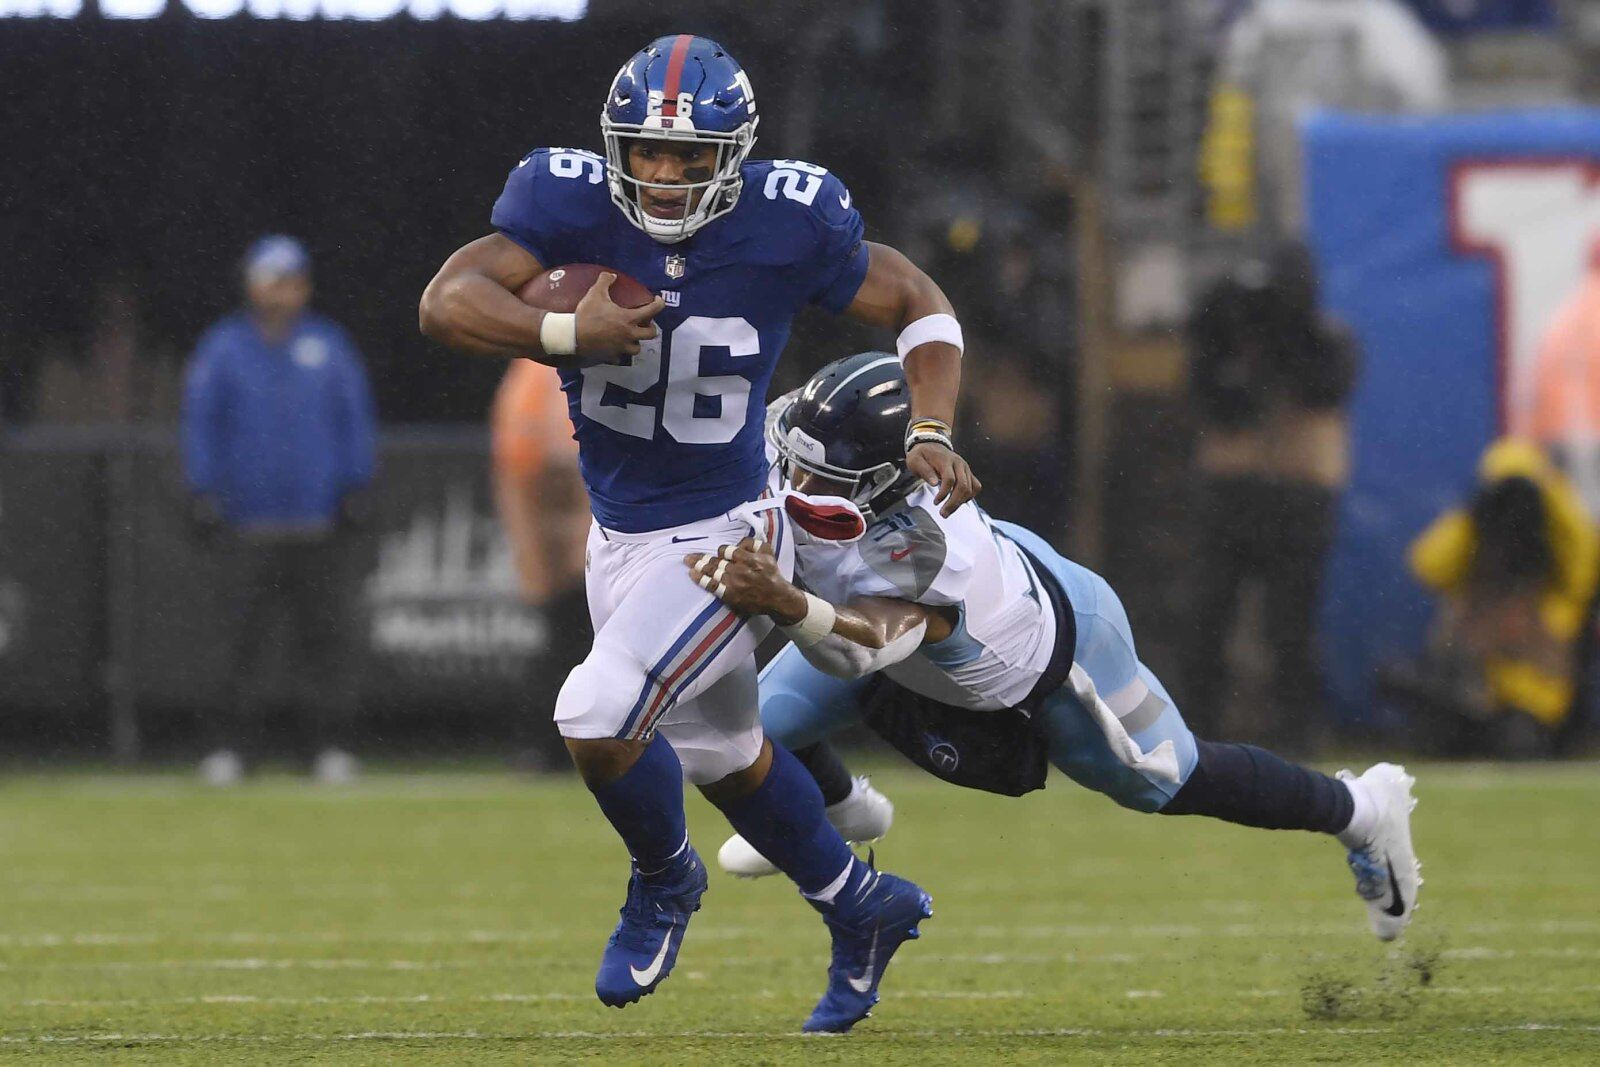 a7630b9690e New York Giants: Saquon Barkley runs his way to Offensive Rookie of the Year